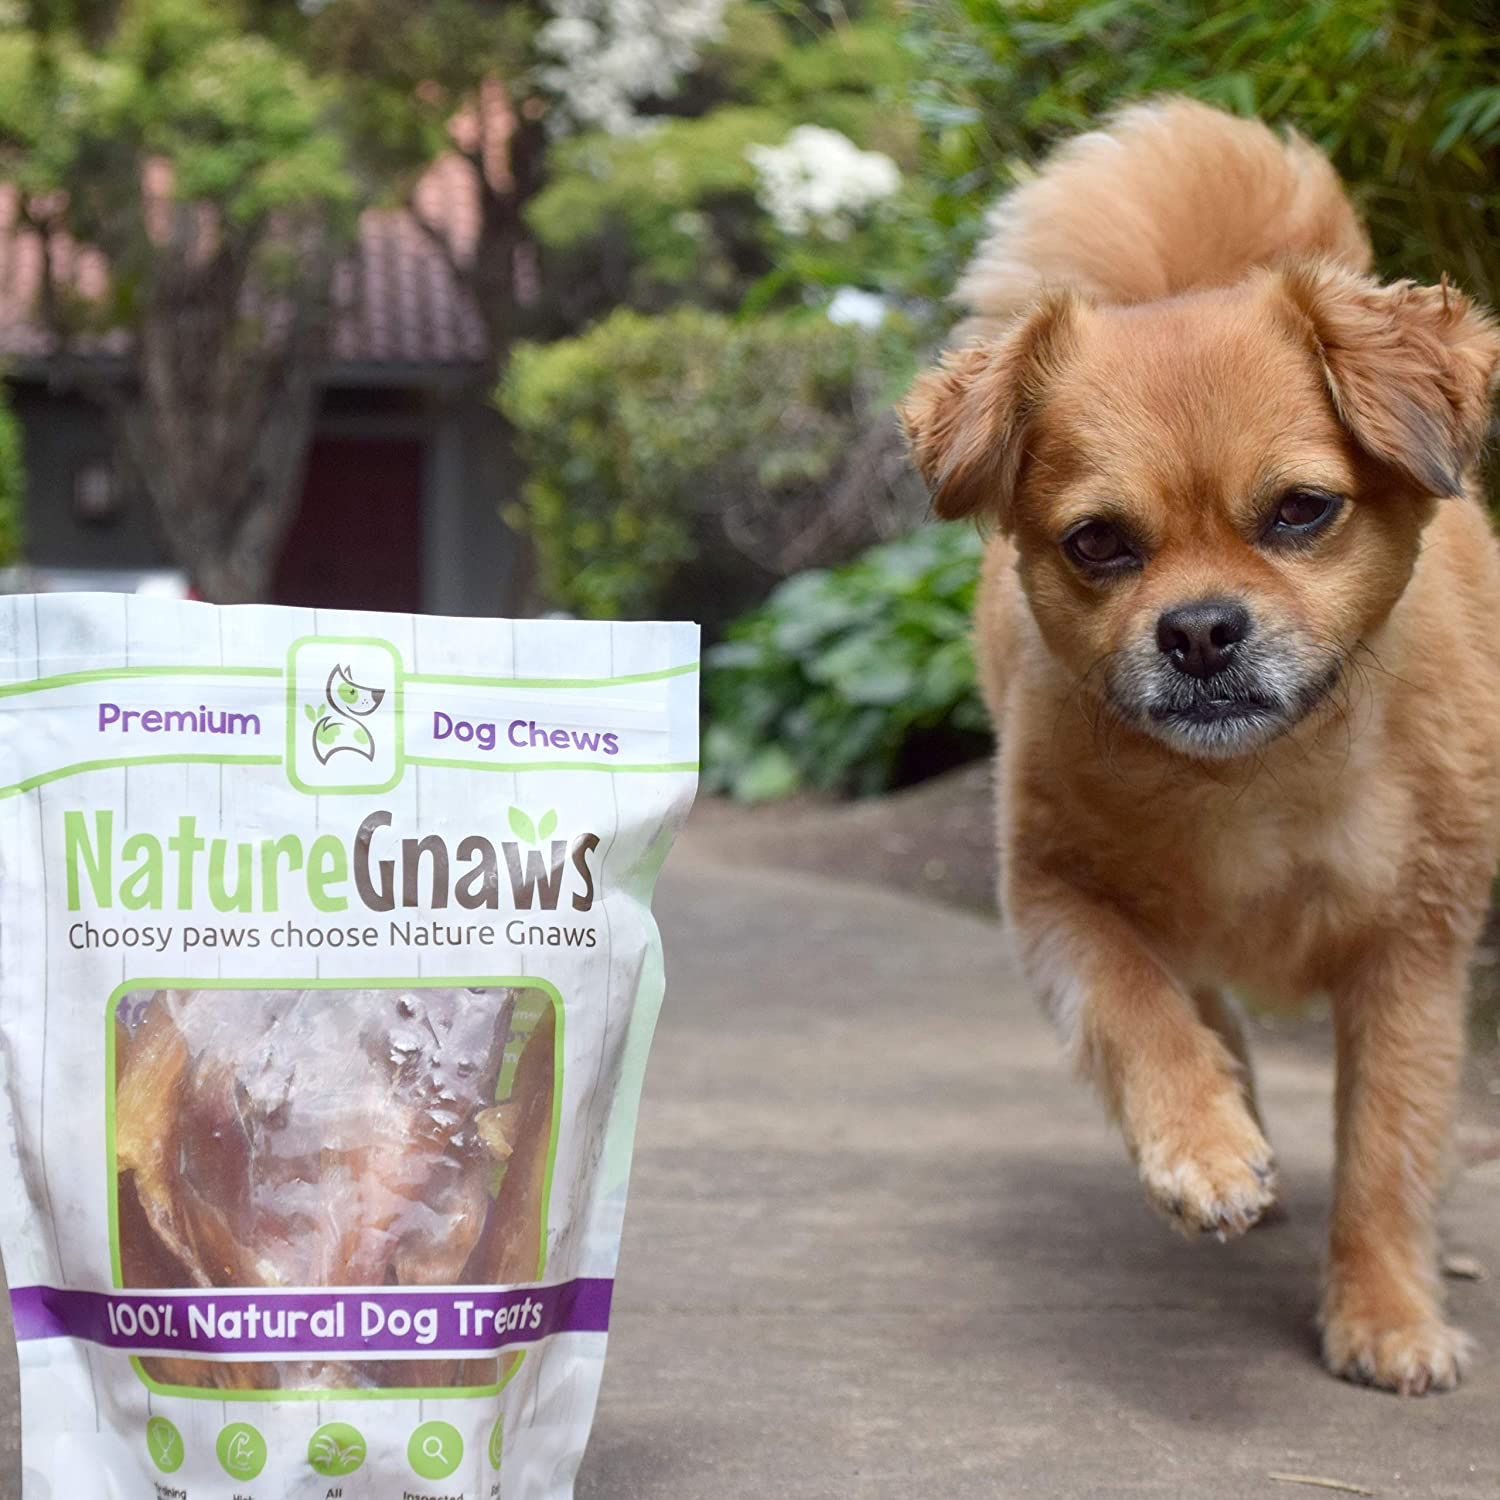 "Nature Gnaws Tendon Chews 4-5"" - 100% Natural Dog Chews - Grass Fed Beef Jerky Tendons for Dogs - Single Ingredient - Rawhide Replacement Chews - Simple Natural Delicious - Packaged in USA"